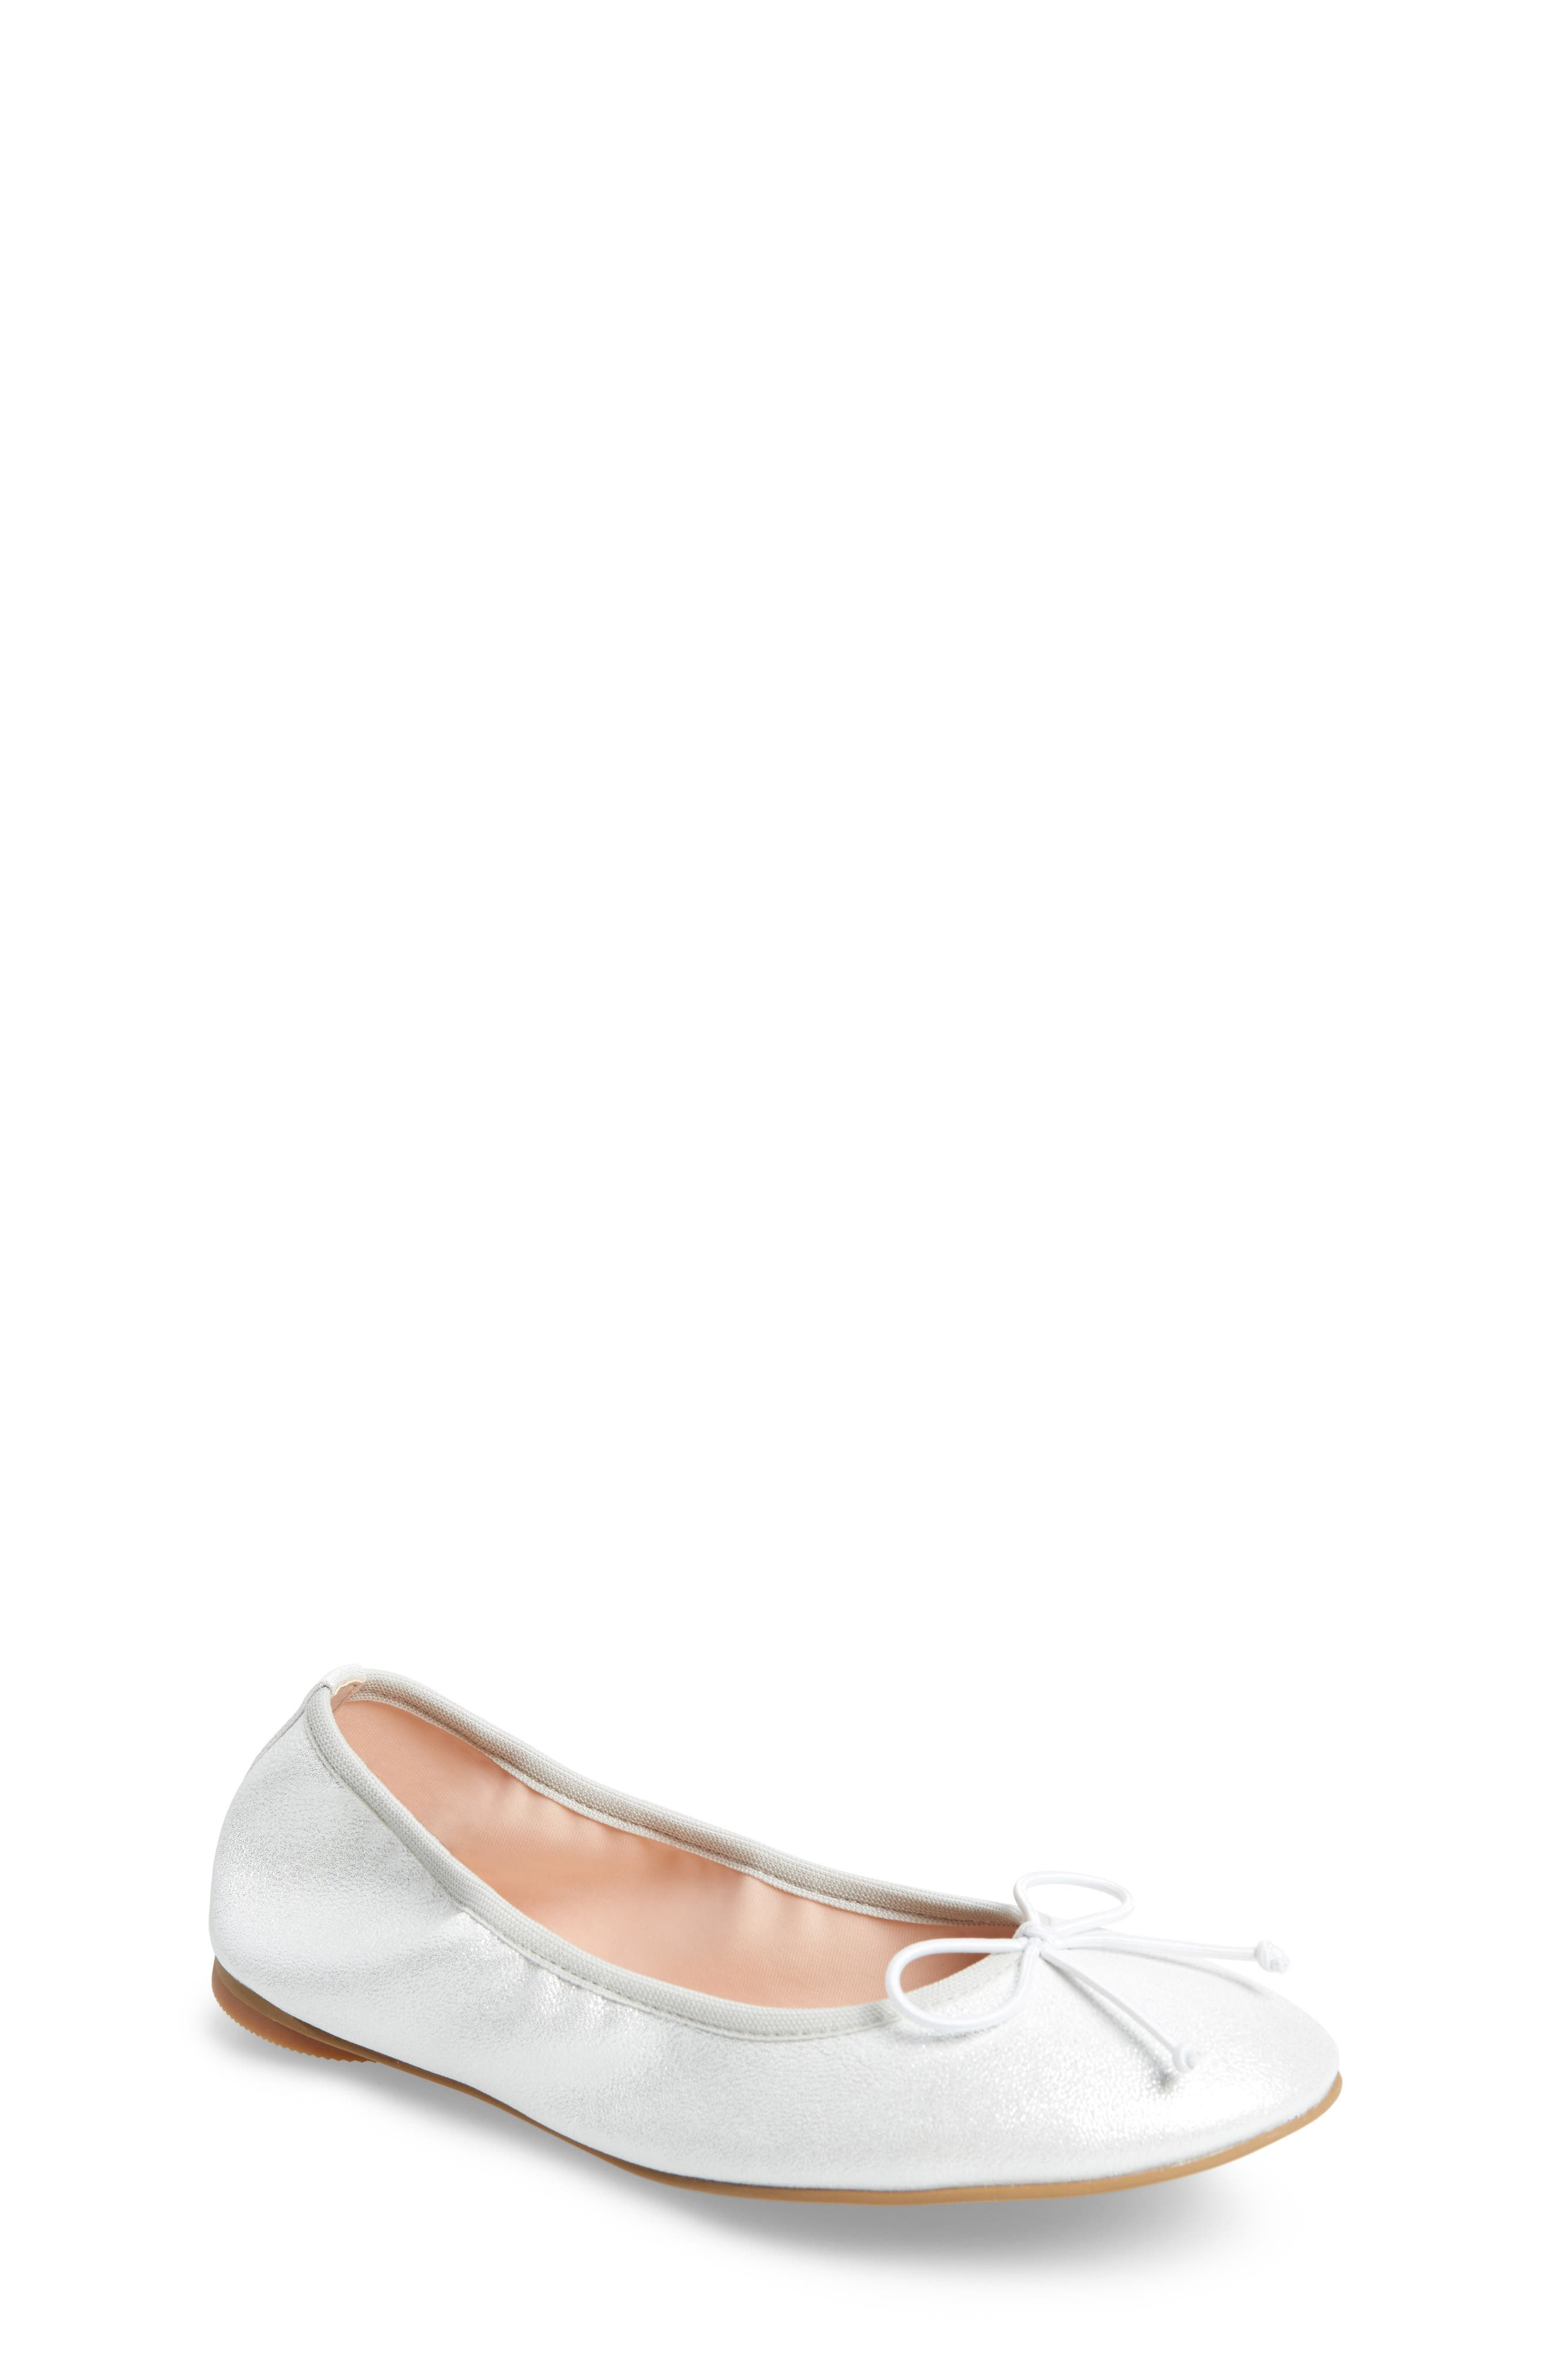 Bella Ballet Flat,                         Main,                         color, Silver Shimmer Faux Leather